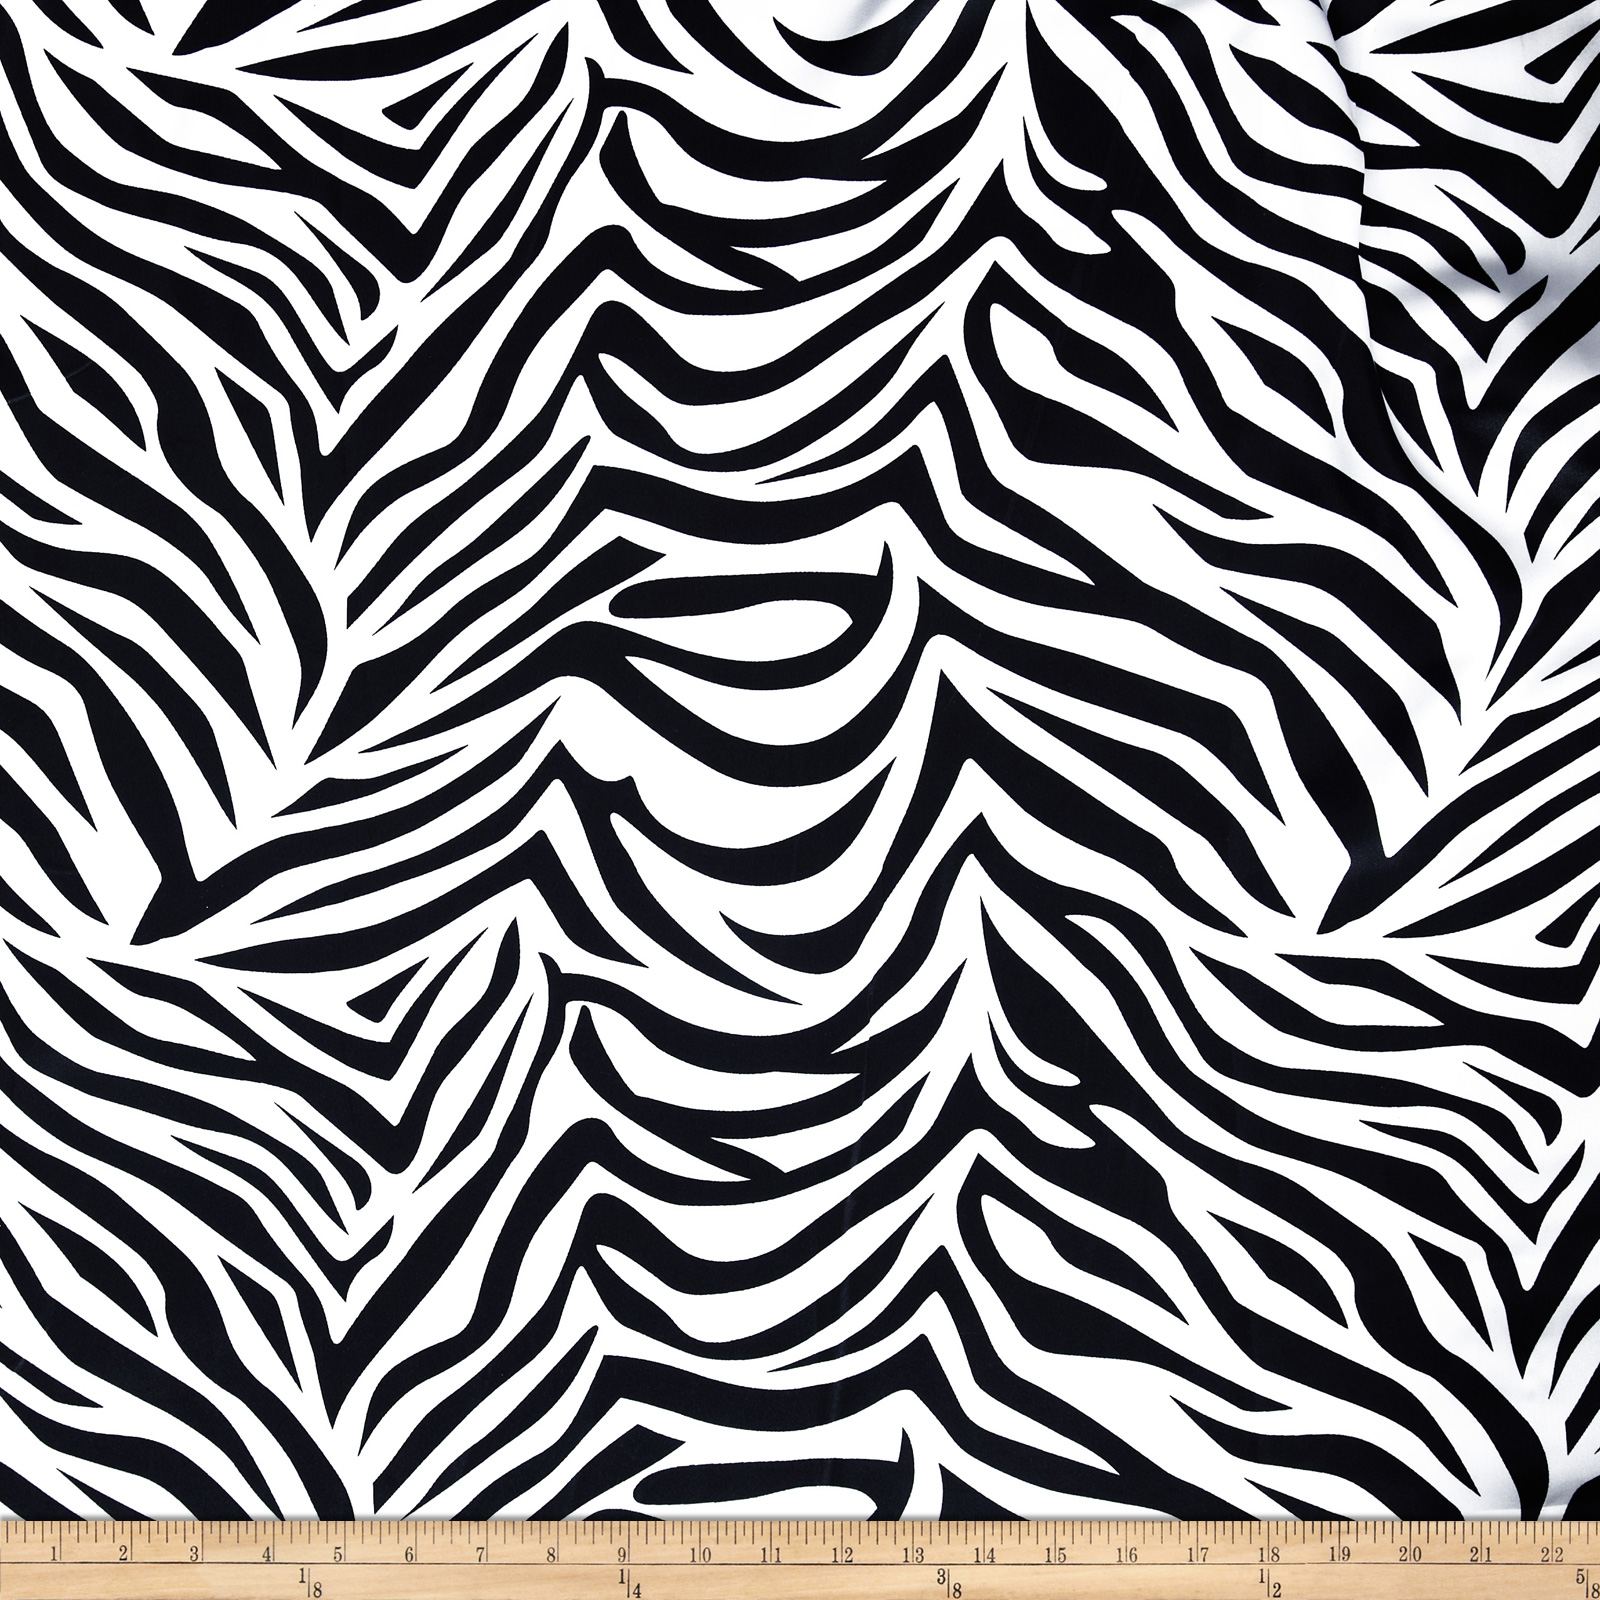 Charmeuse Satin Zebra Black/White Fabric